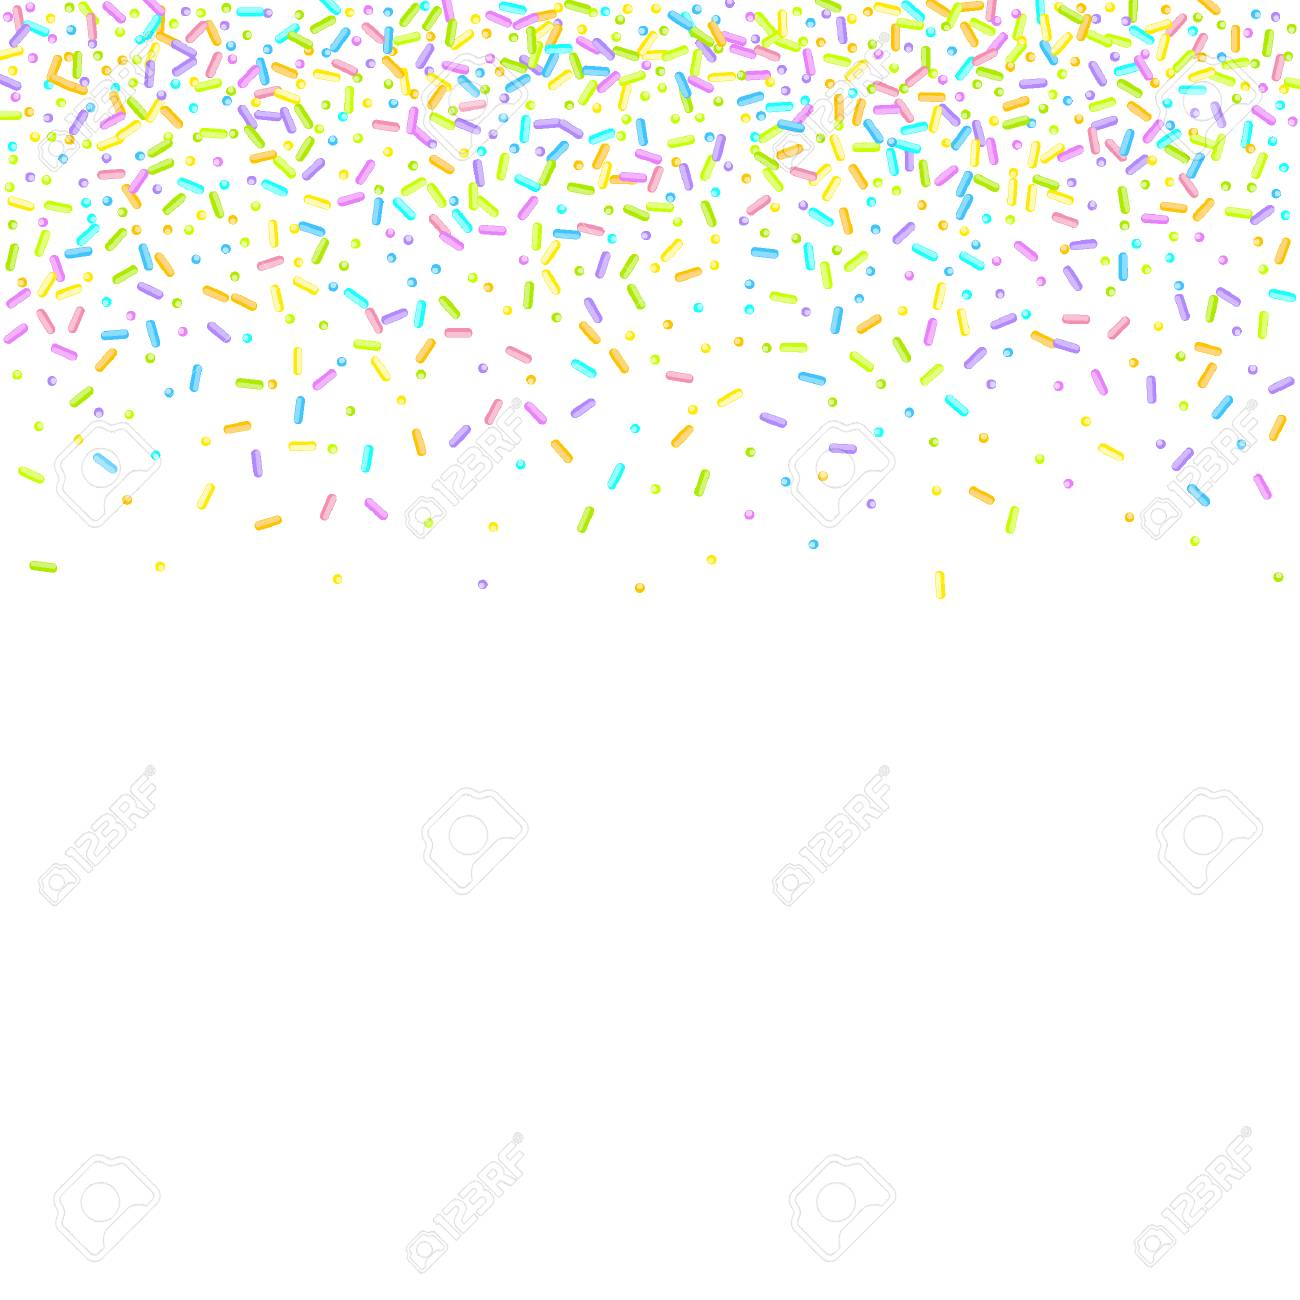 Sprinkles grainy. Sweet confetti on white chocolate glaze background. Cupcake, donuts, dessert, sugar, bakery background. Vector Illustration for holiday designs, party, birthday, wedding invitation. - 119907334